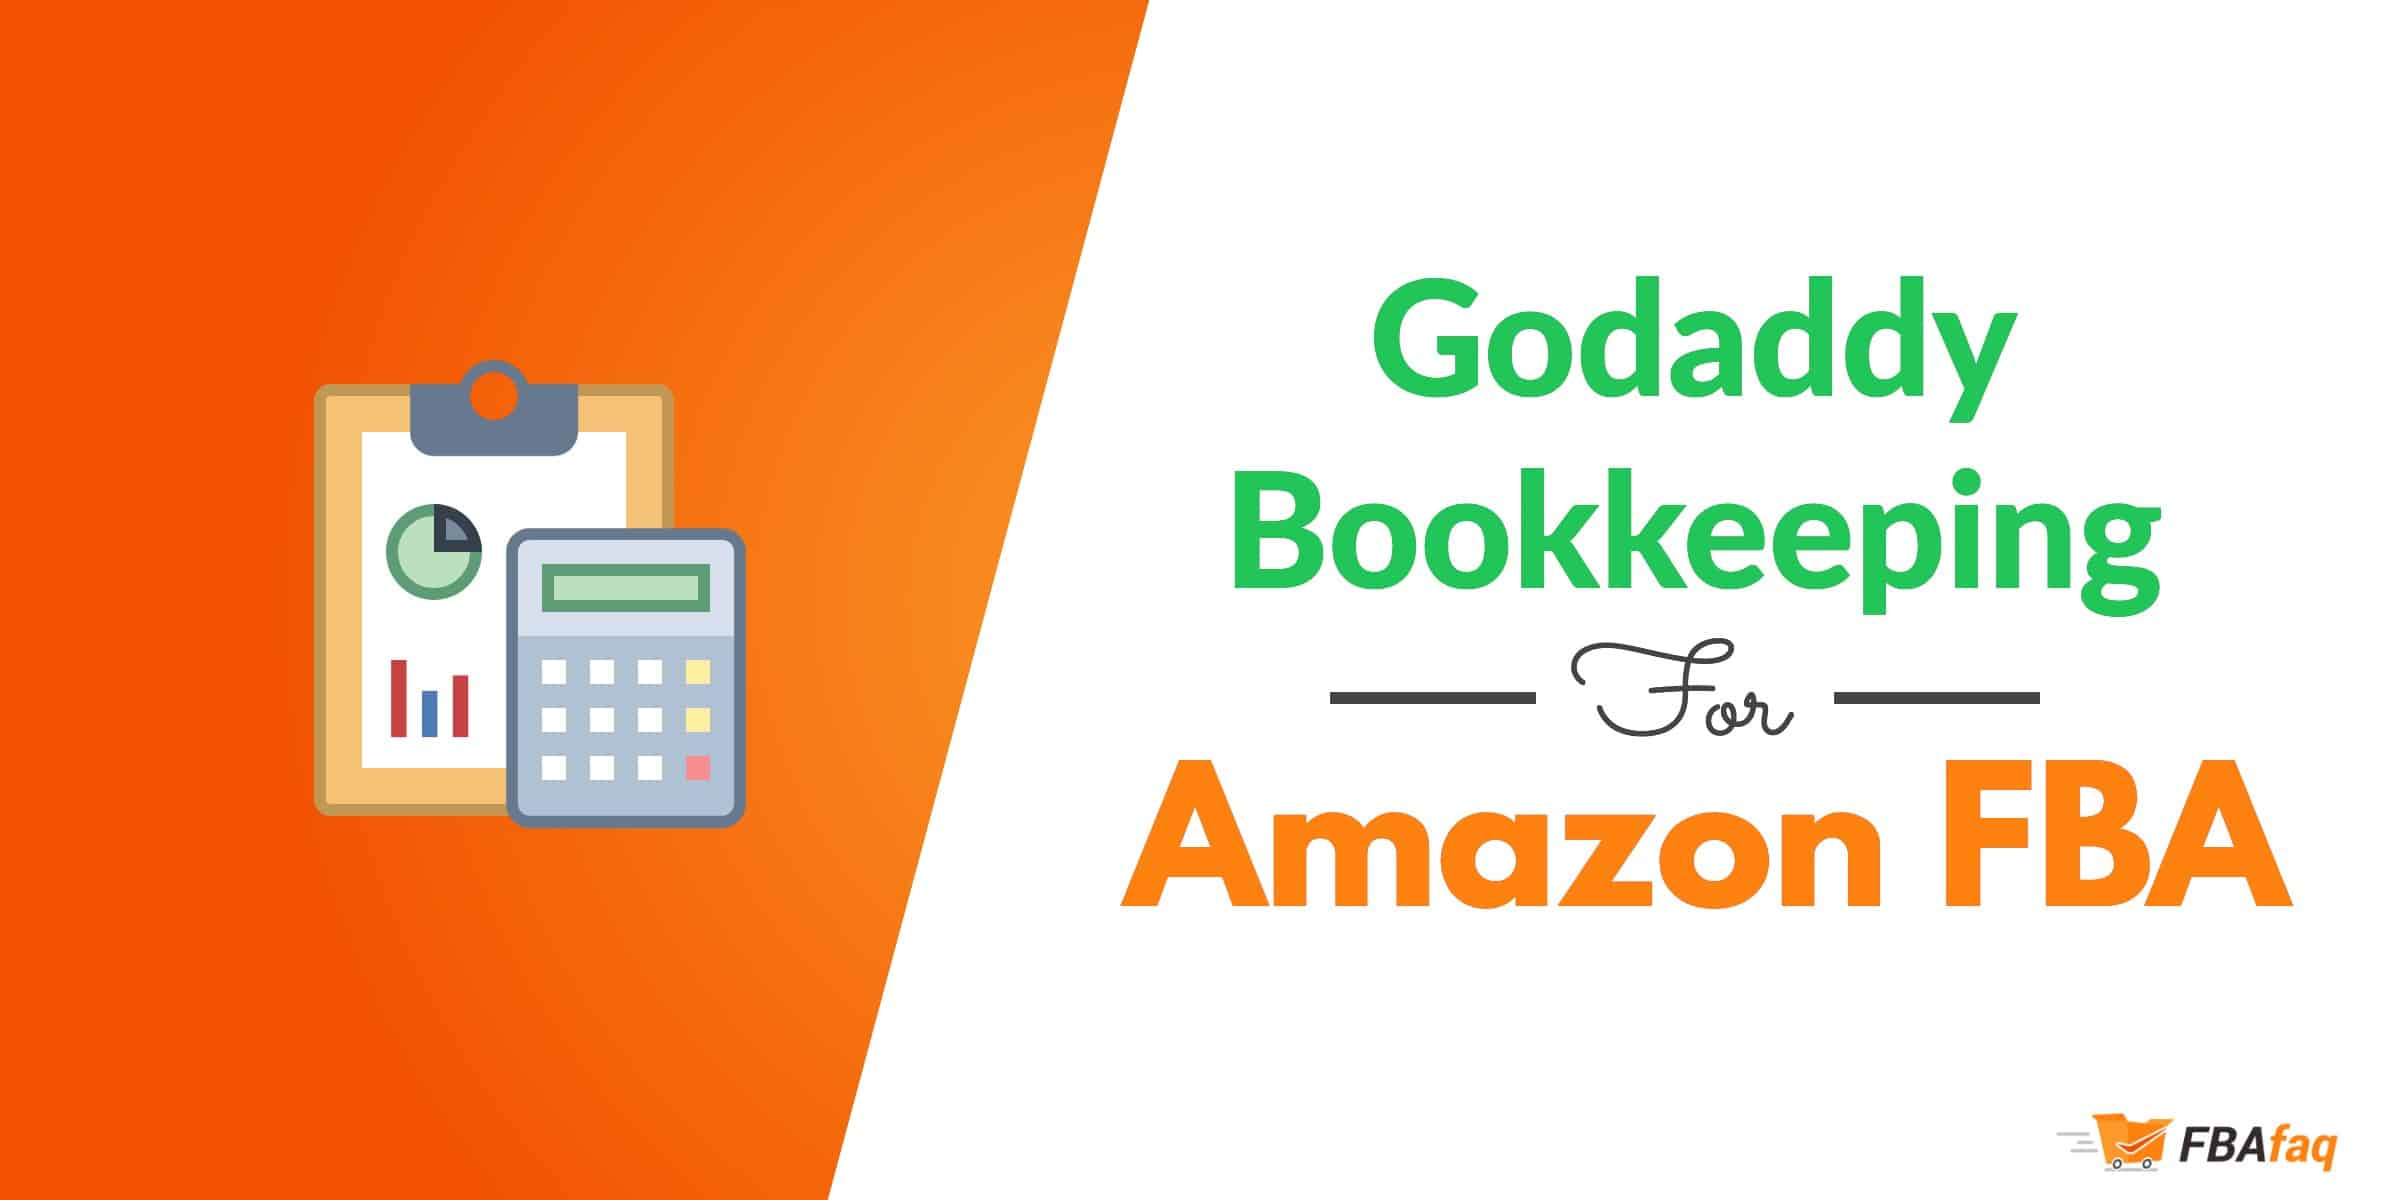 godaddy bookkeeping amazon fba